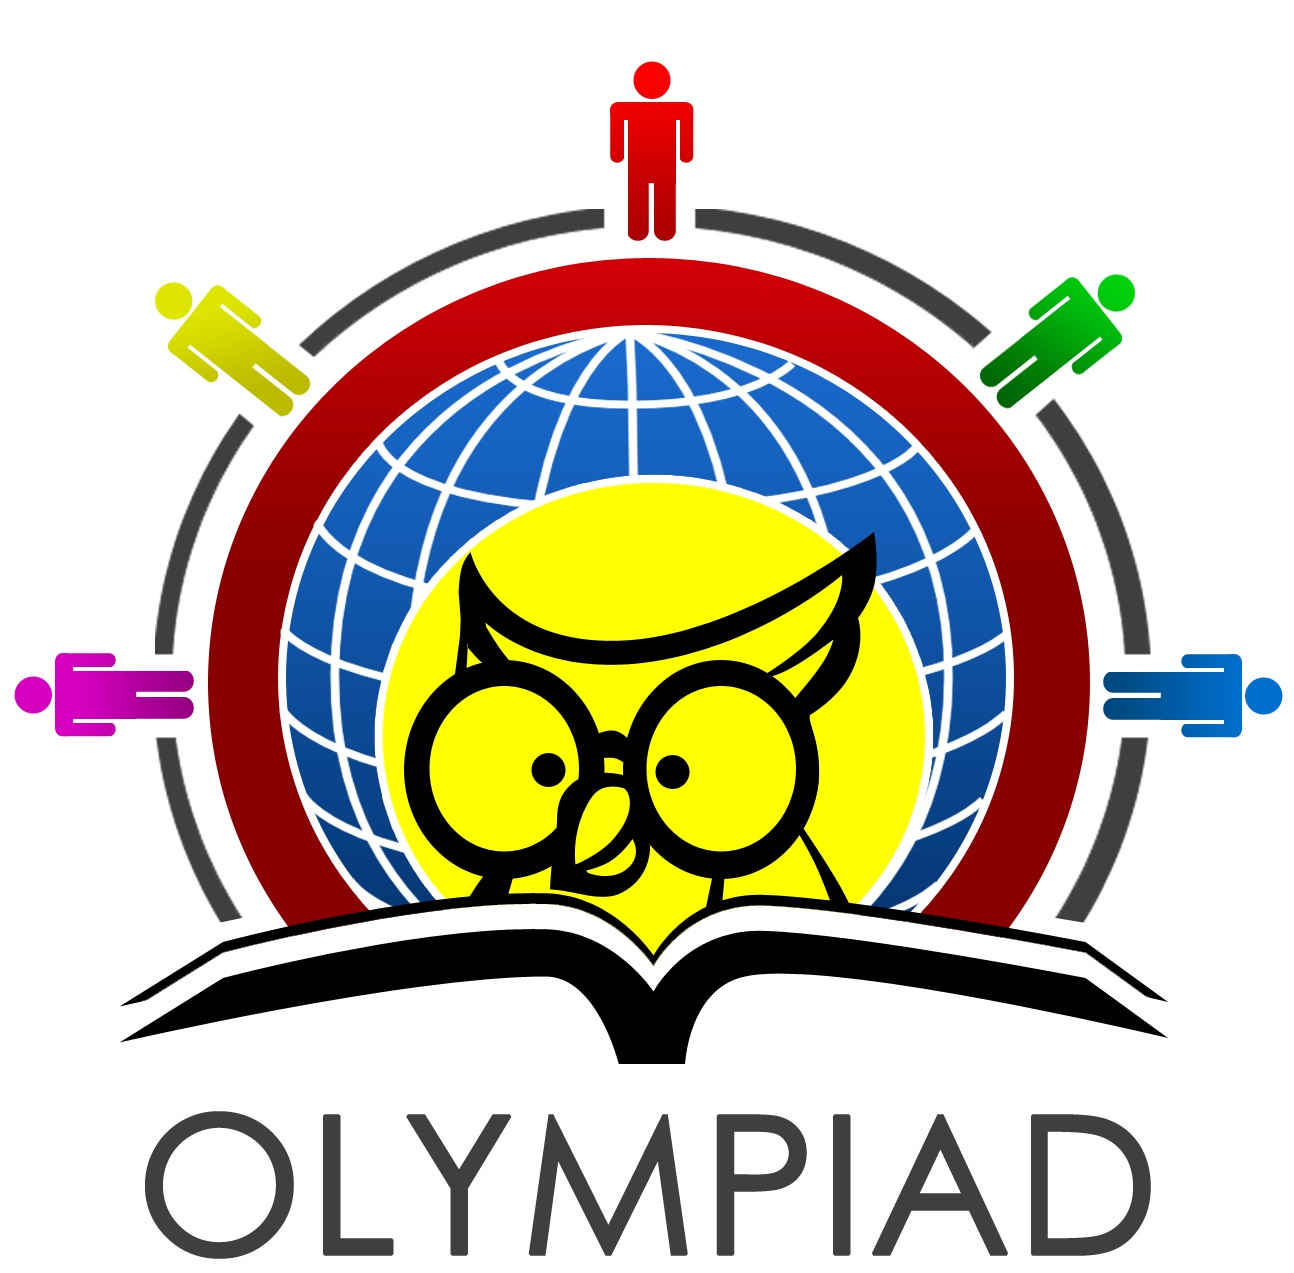 Unit 7 Sustainable Tourism London Olympiad Assignment, Sustainable Tourism London Olympiad, Assignment Help UK, Assignment Help, Assignment Help Coventry